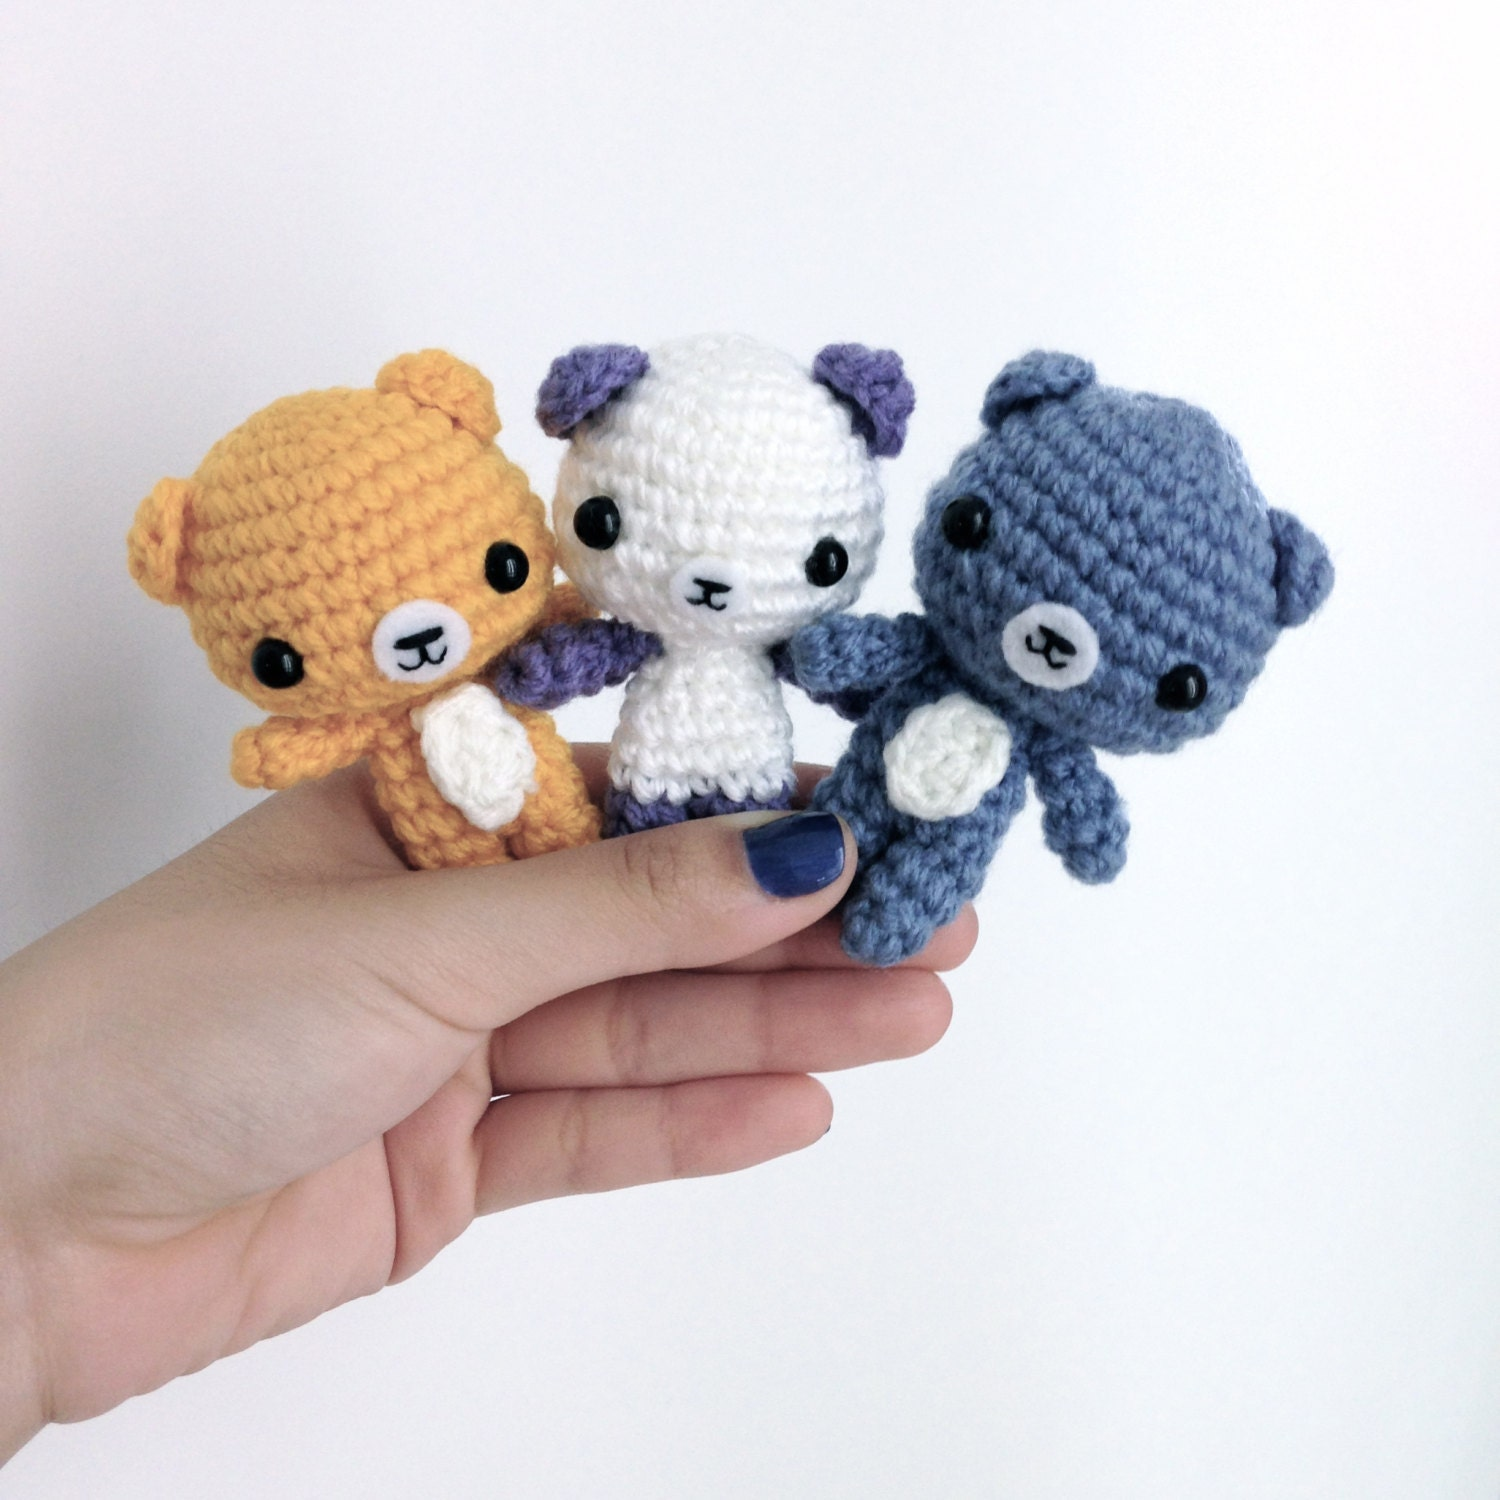 Amigurumi Baby Shower Bears : Items similar to Crochet Bear Amigurumi Teddy Bear ...